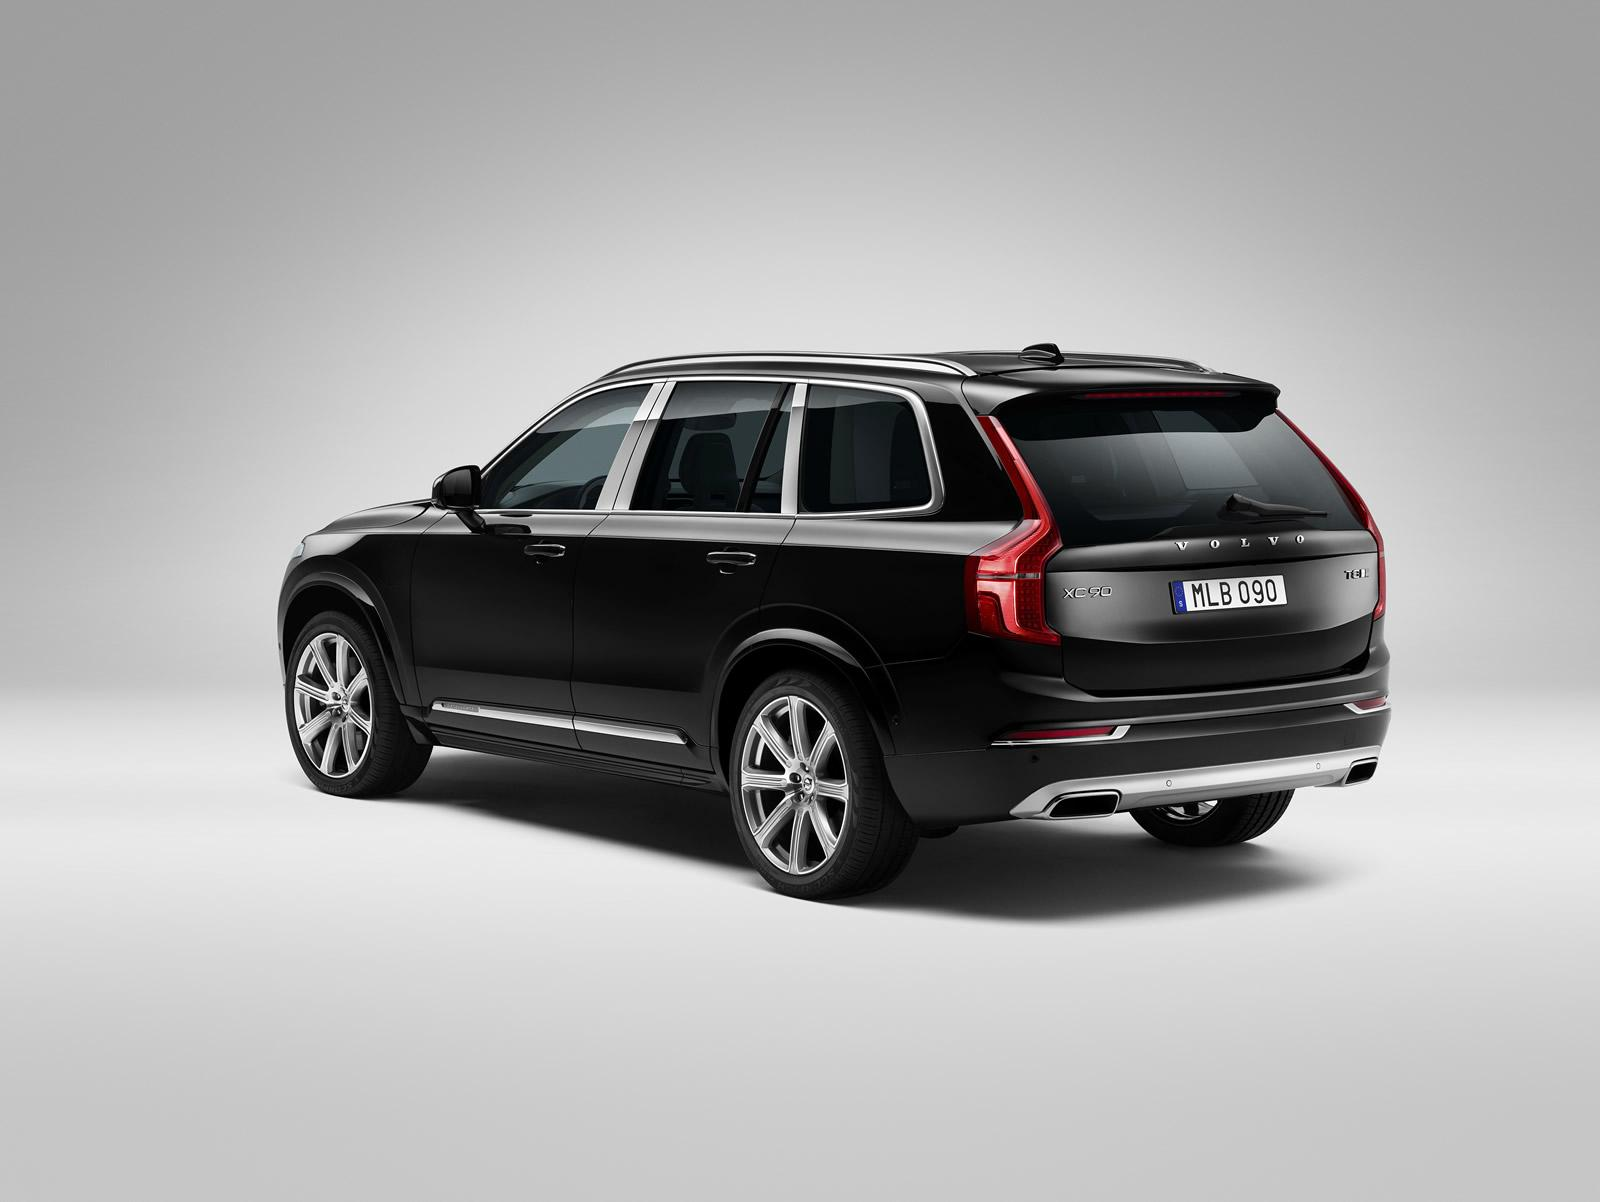 2016 Volvo XC90 Excellence 2 2016 Volvo XC90 Excellence Features and details